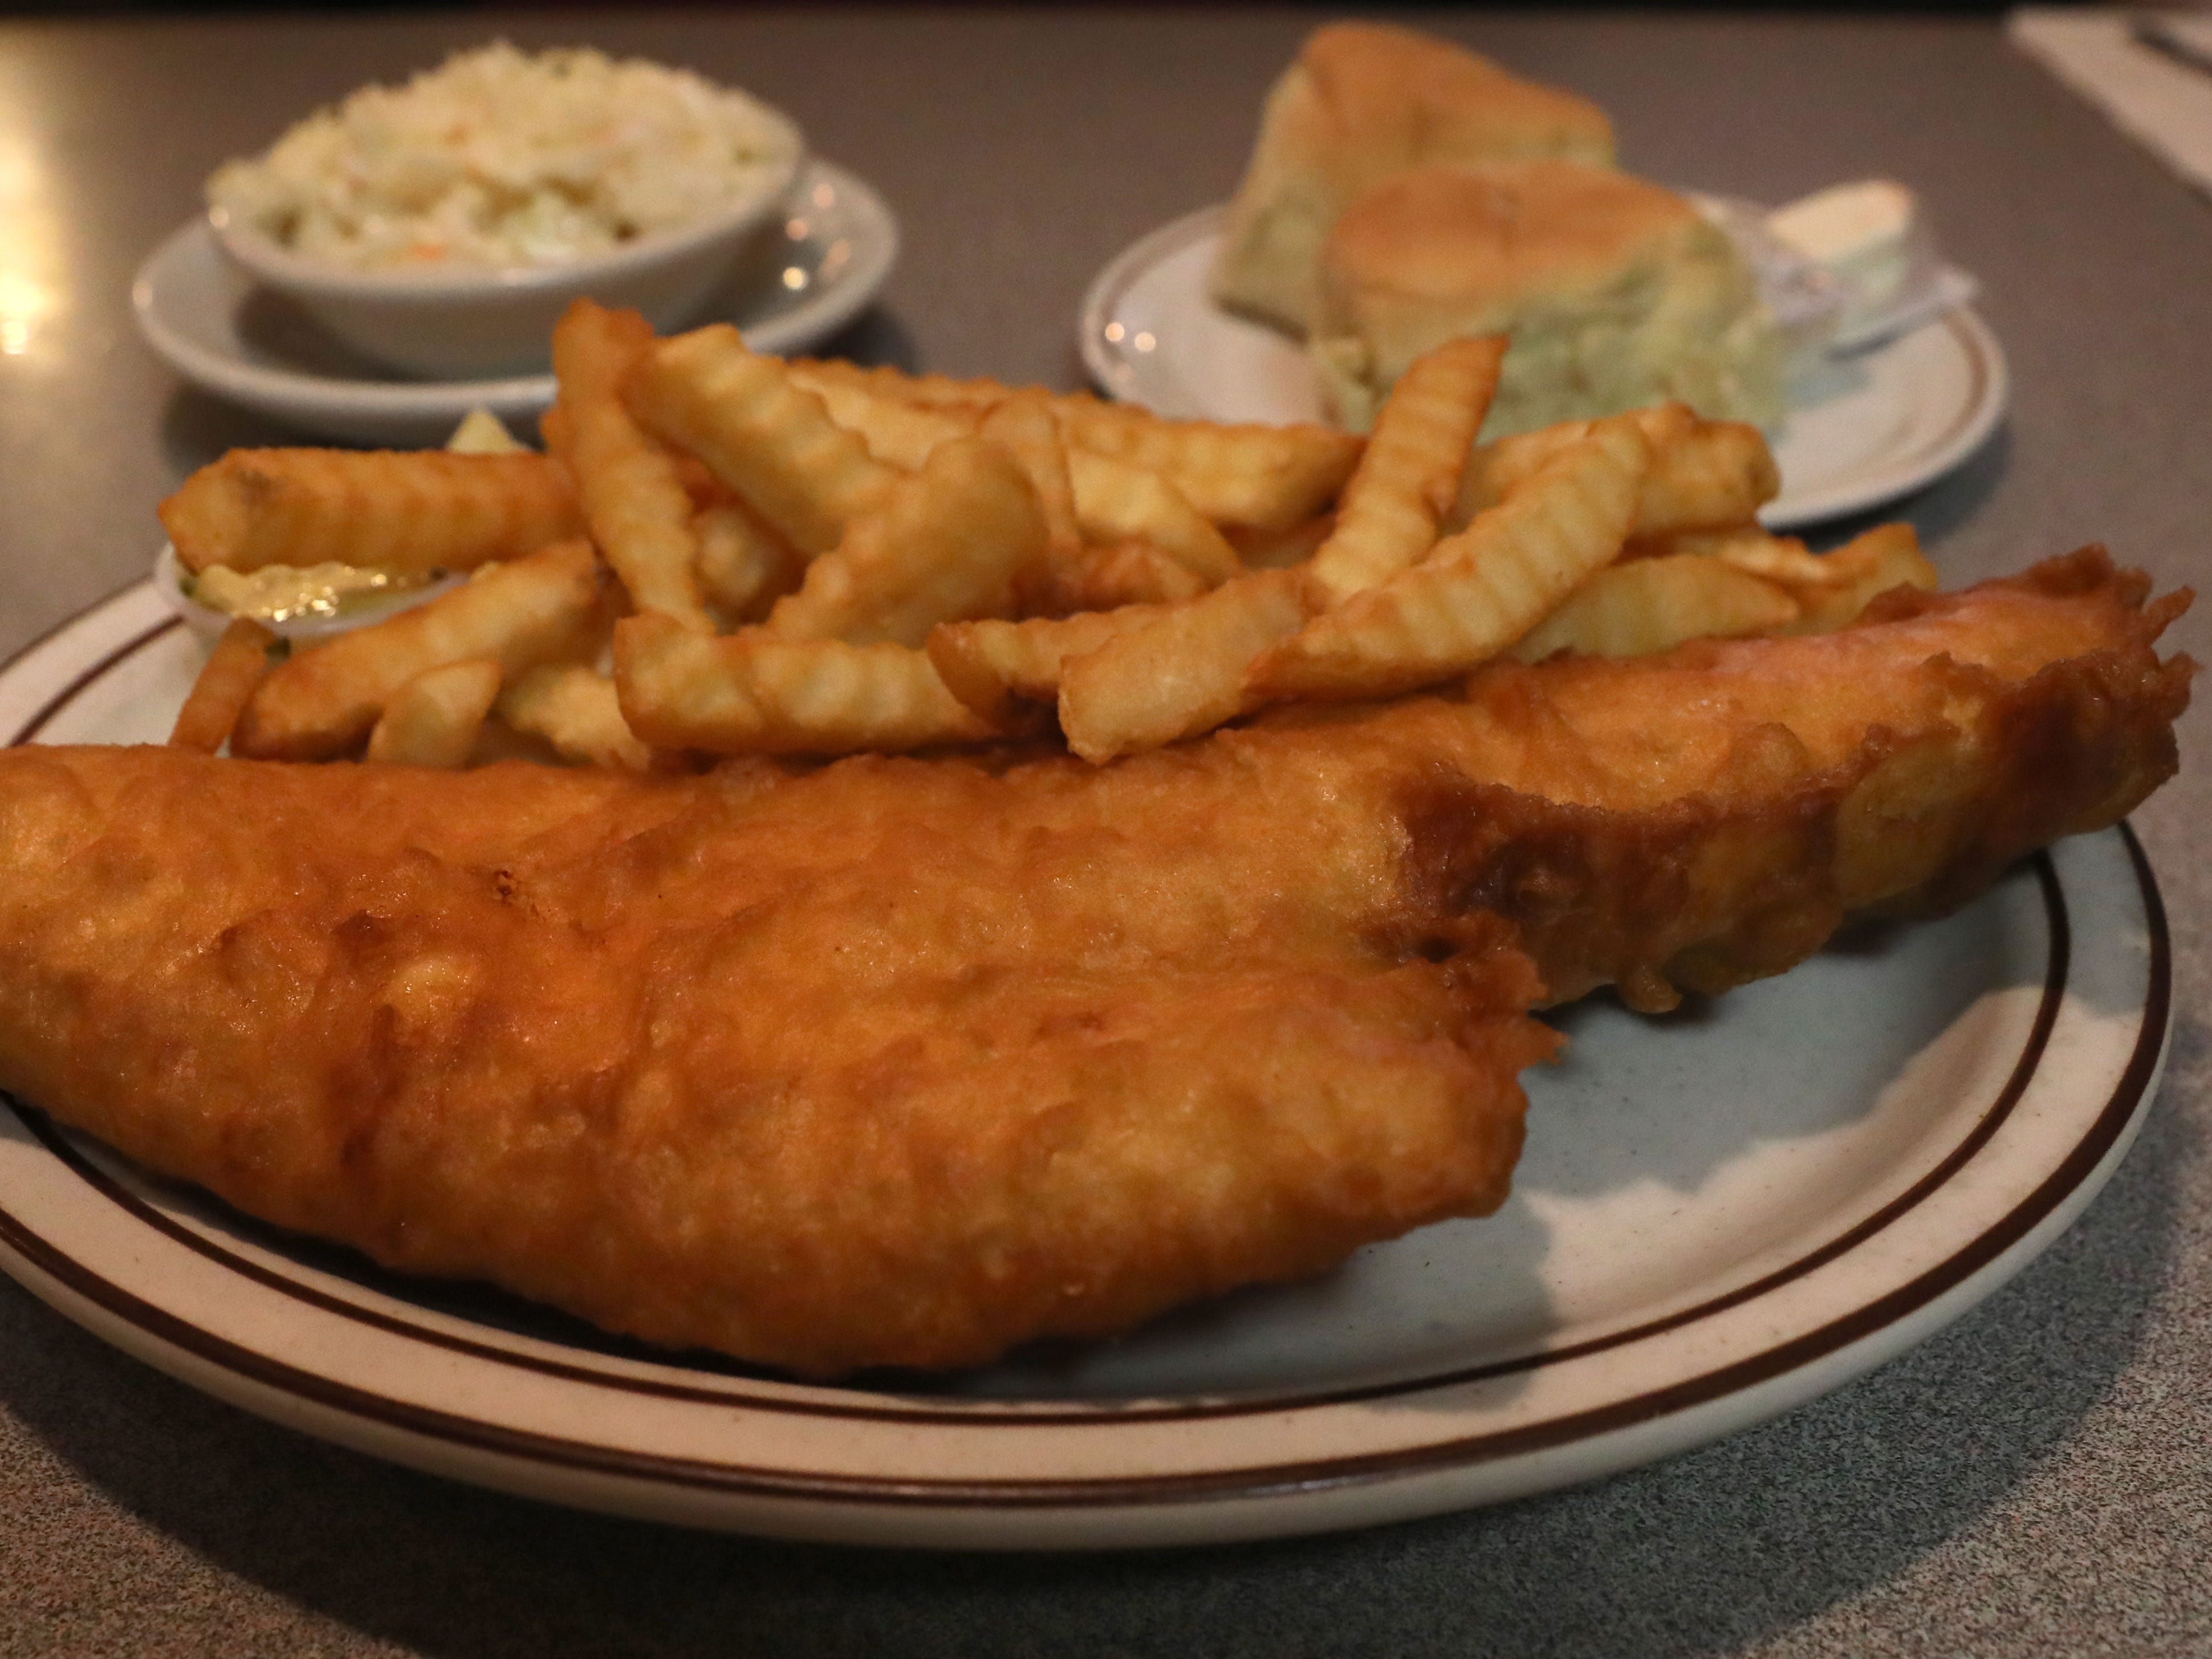 The Parkway Family Restaurant's fish fry included crinkle cut fries, coleslaw and rolls and butter.